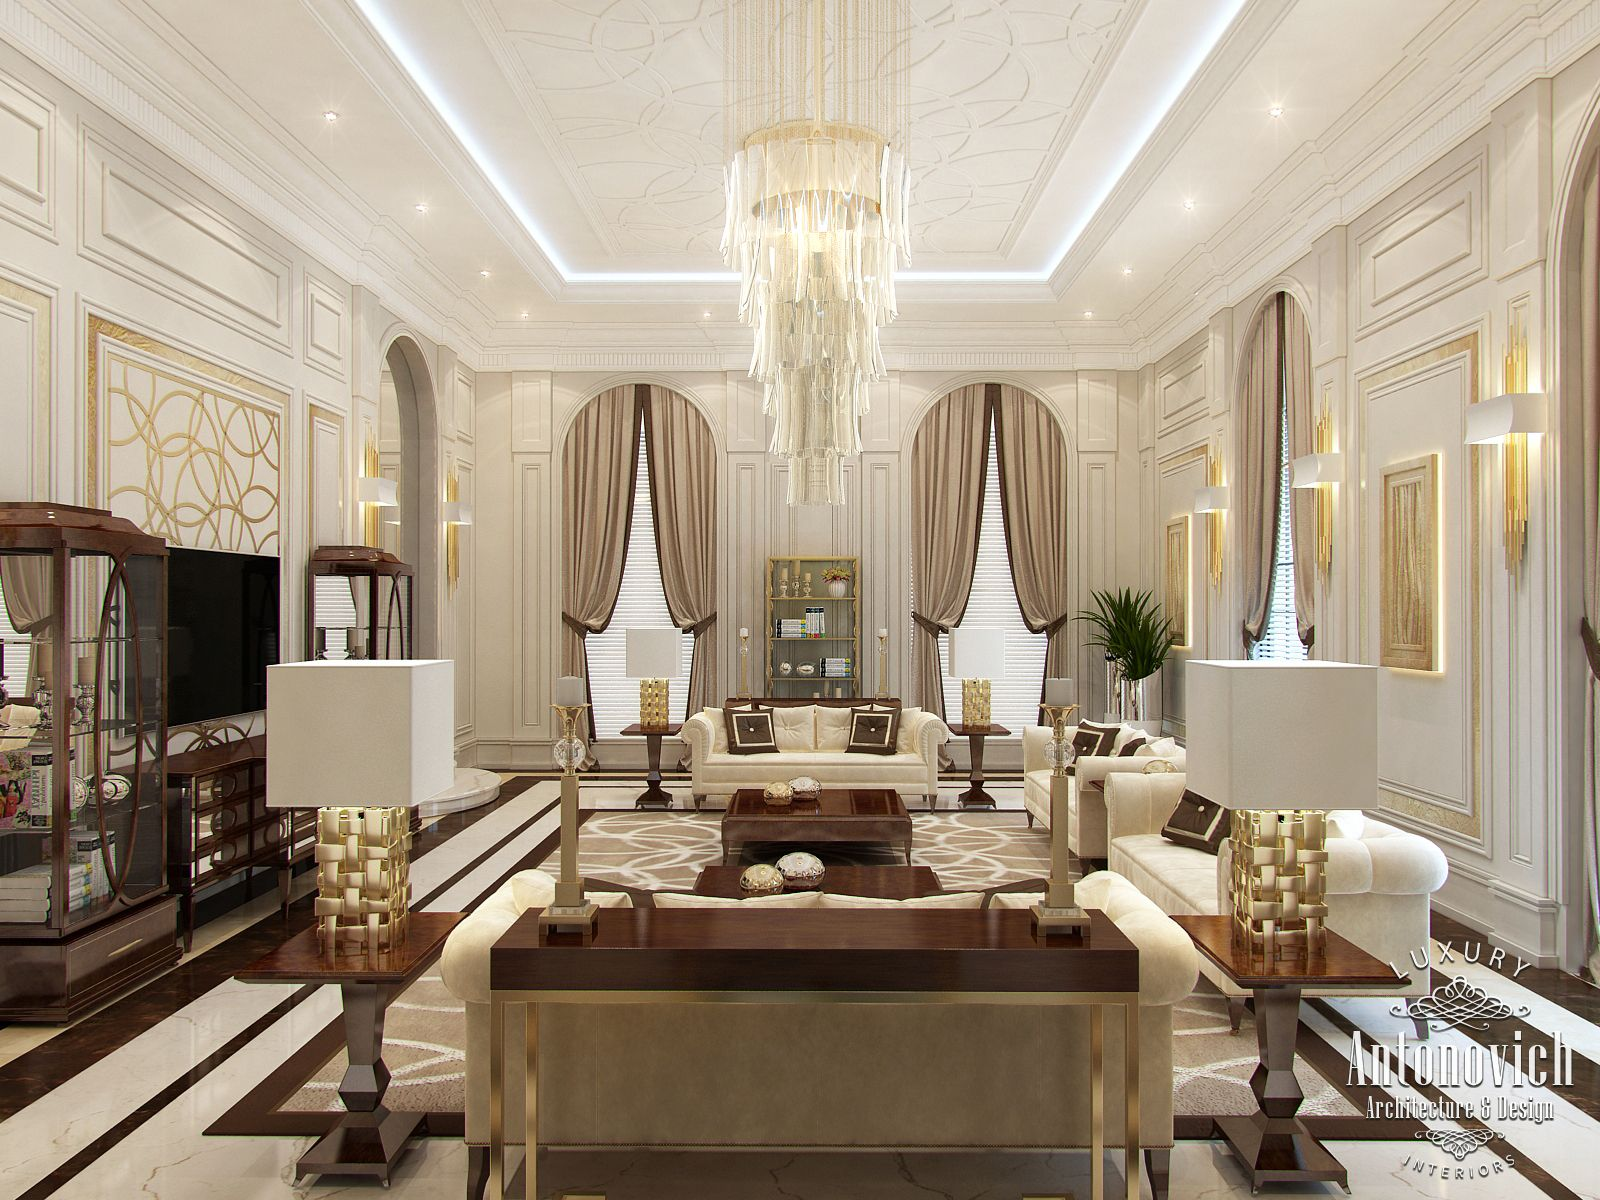 Luxury antonovich design uae interior design dubai from luxury antonovich design - Luxury interior ...